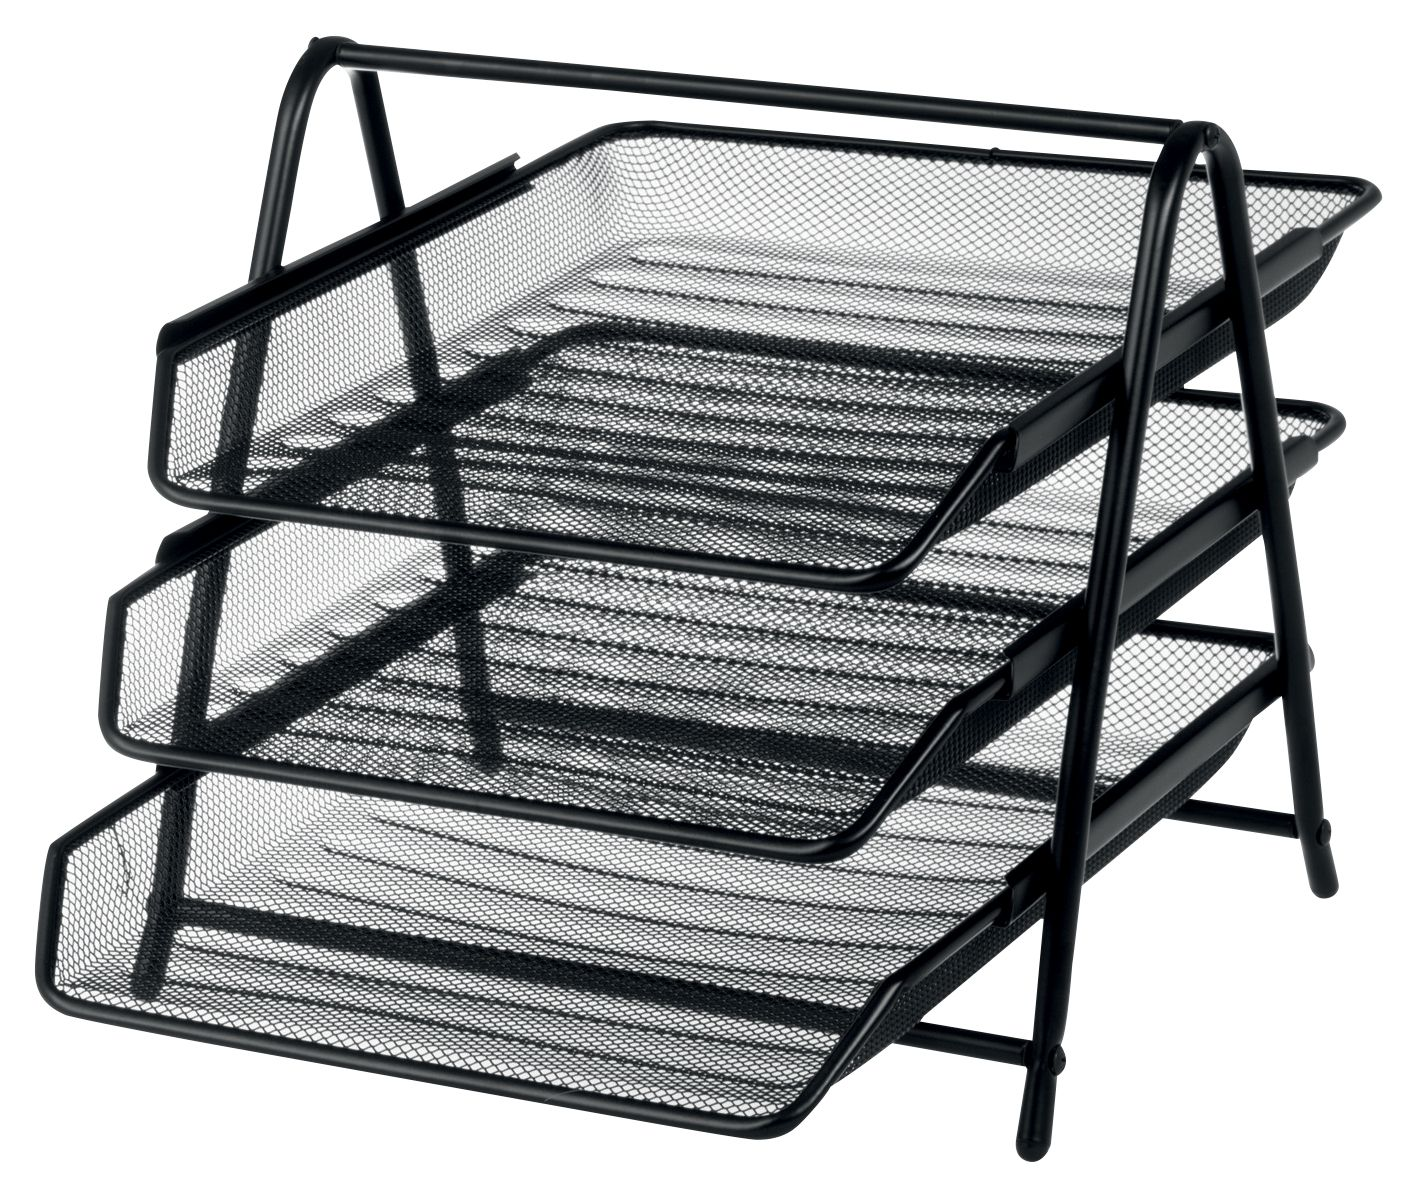 Design Ideas Mesh Letter Tray: Office Depot Executive Mesh 3 Tier Letter Tray - Black